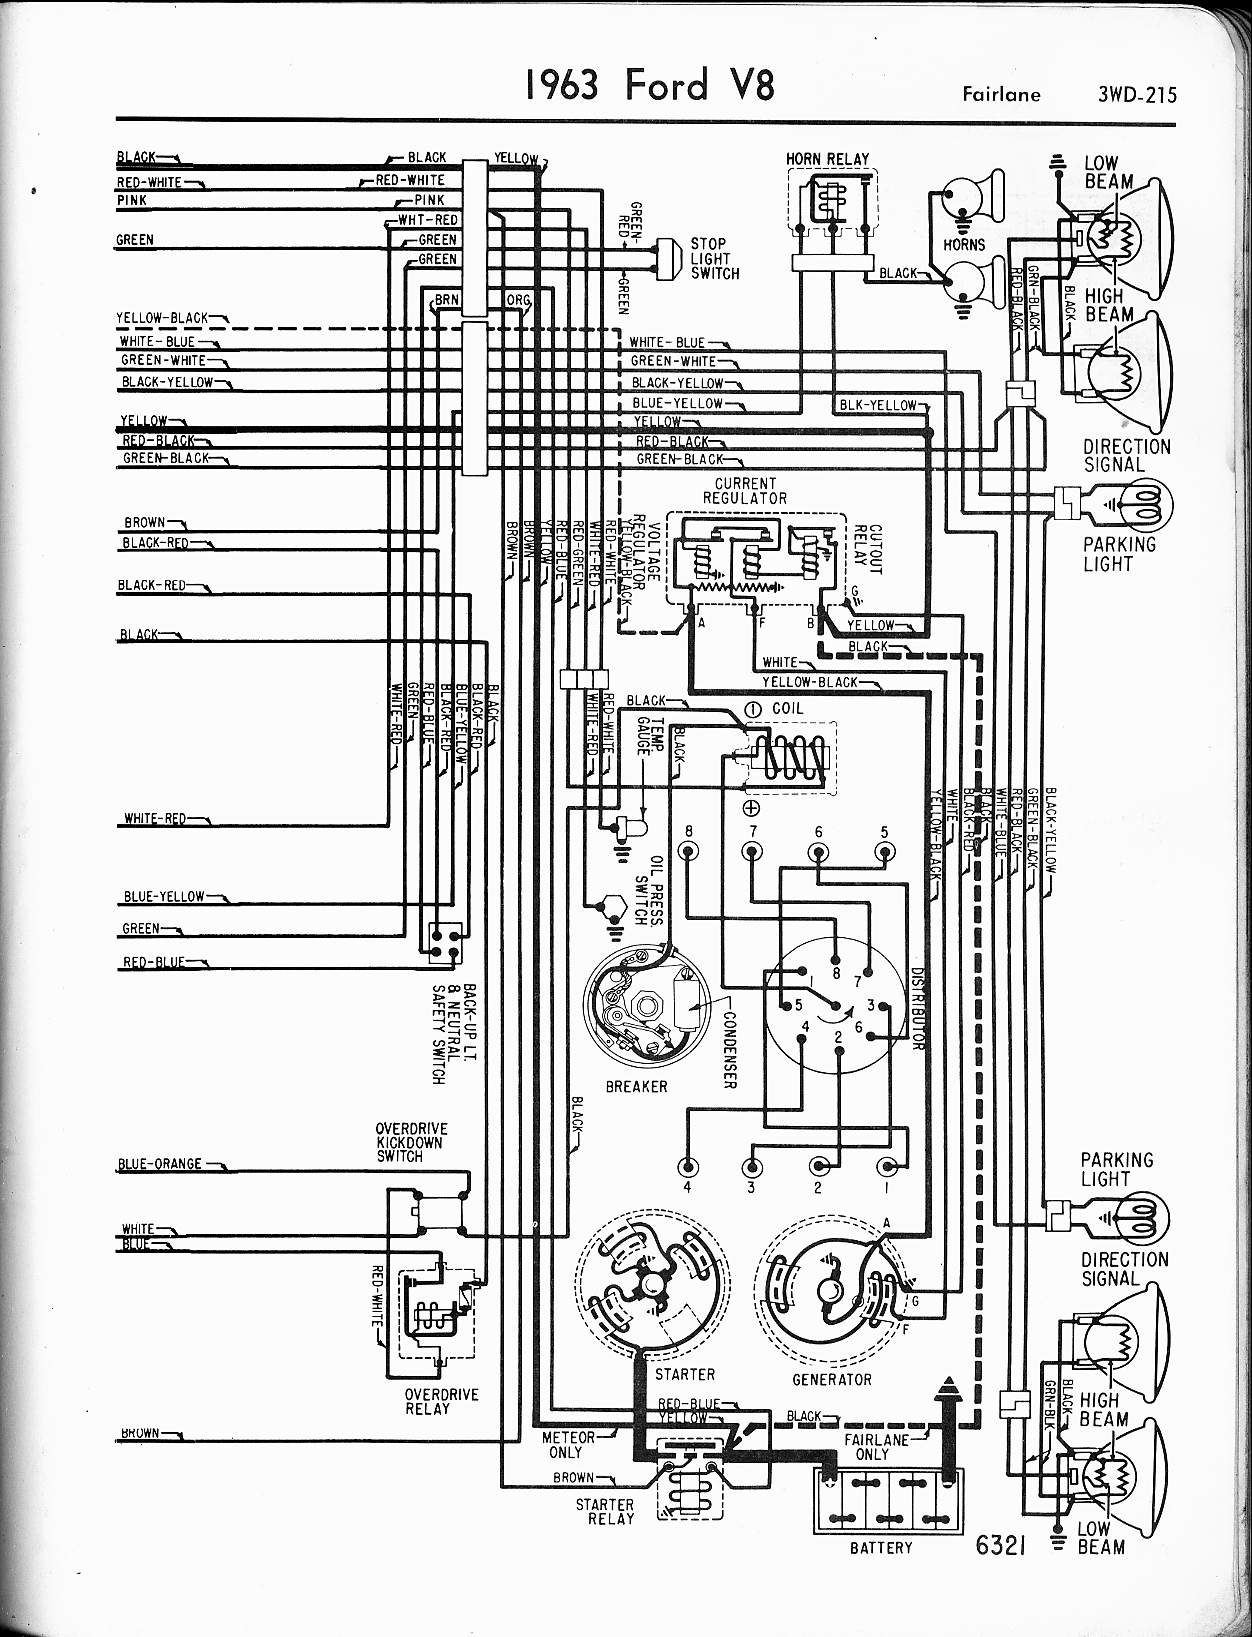 1969 Ford Ranchero Wiring Diagram Trusted Diagrams Torino Co 1963 Fairlane Example Electrical U2022 Rh Olkha 1968